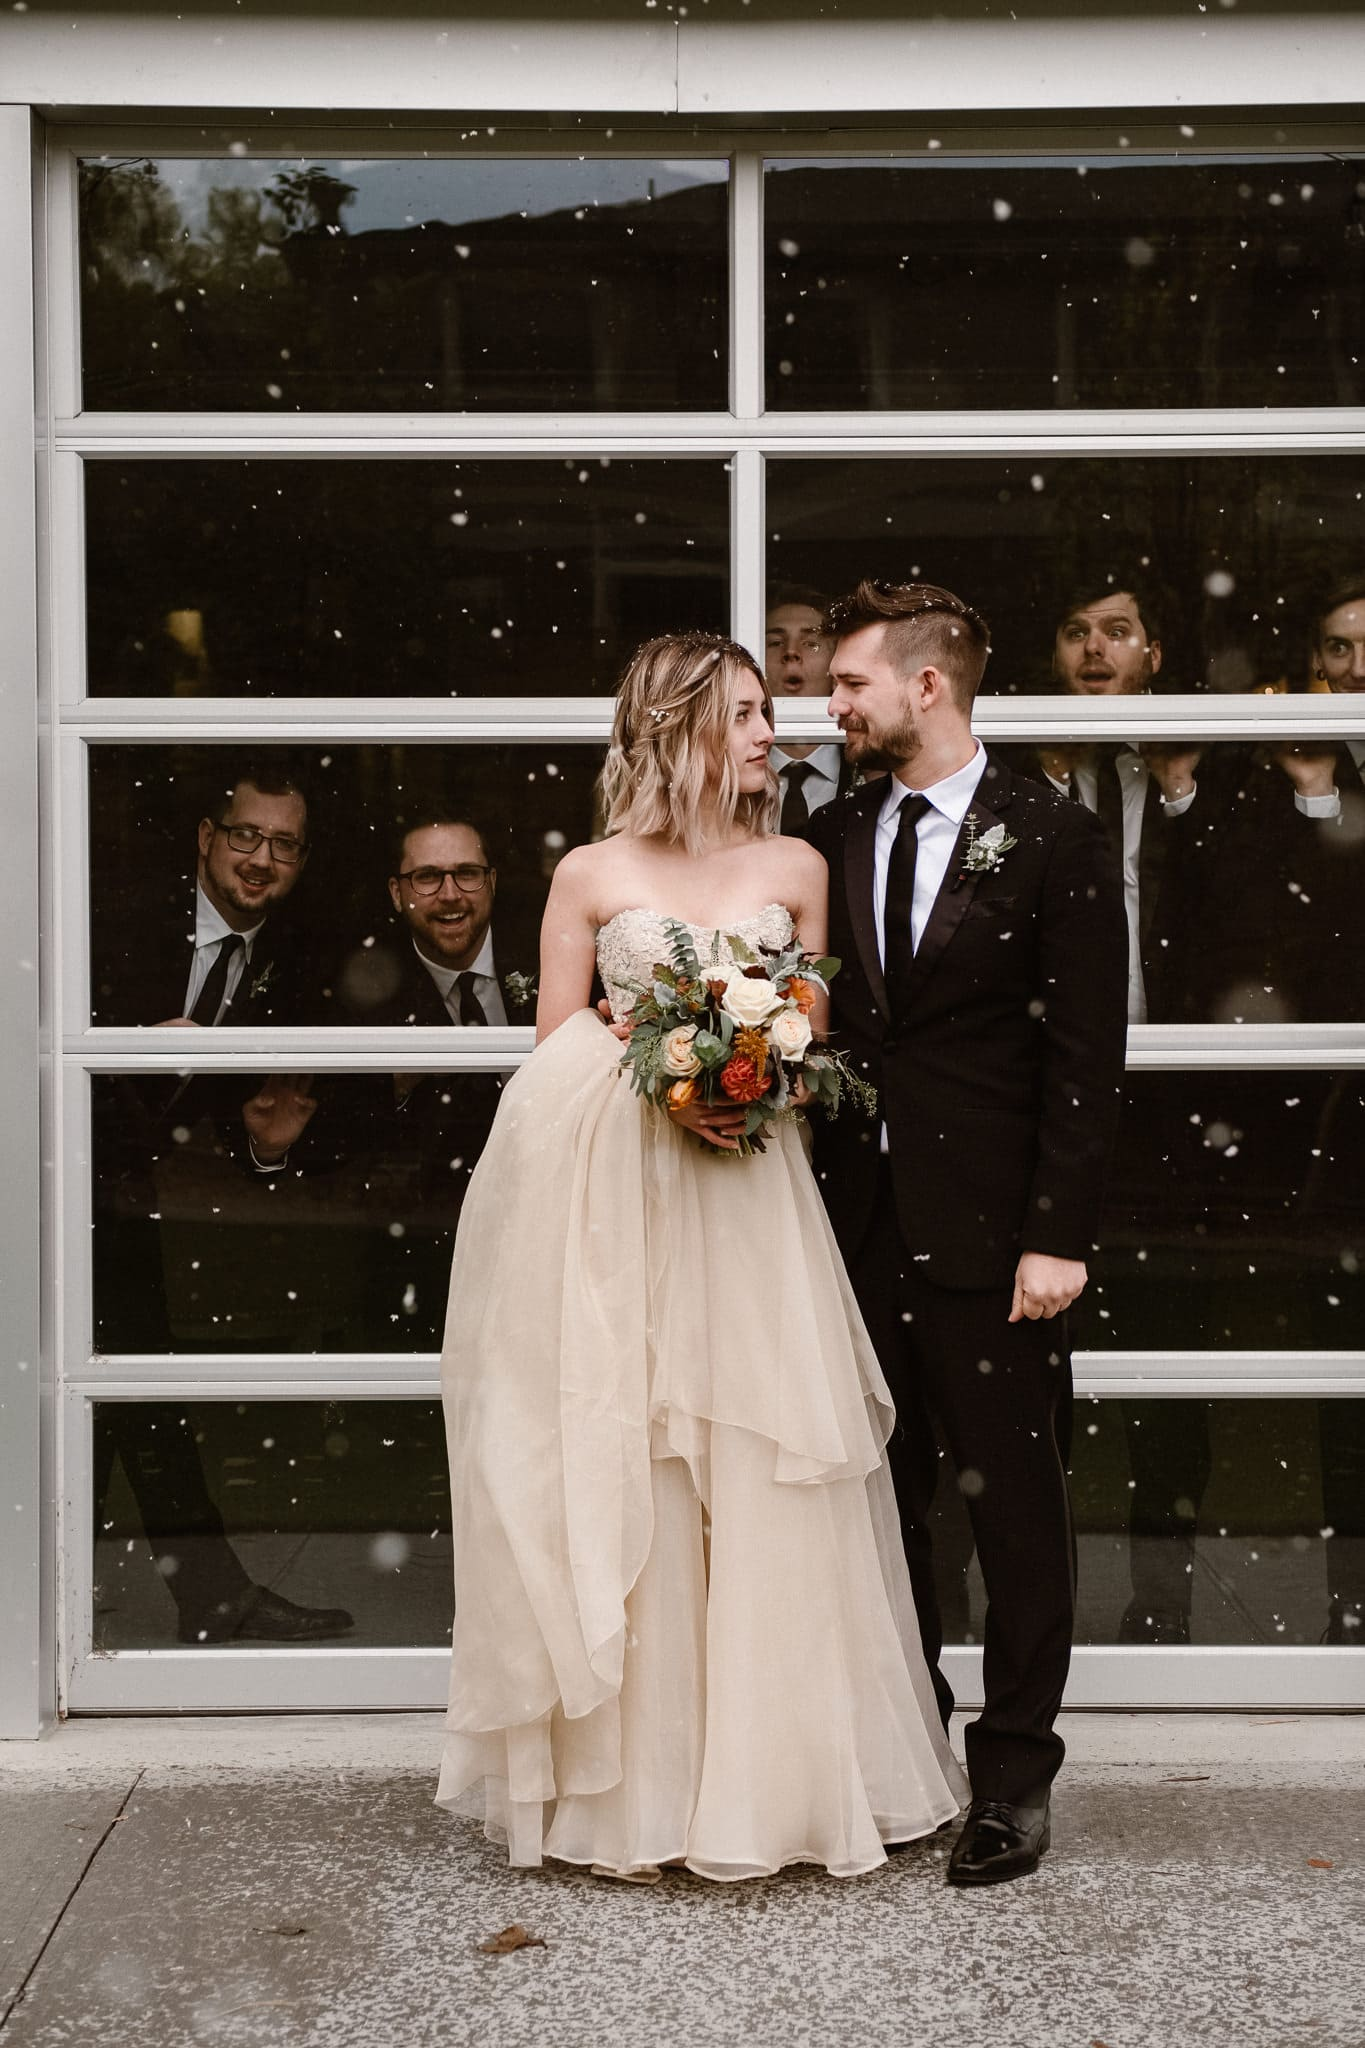 St Vrain Wedding Photographer | Longmont Wedding Photographer | Colorado Winter Wedding Photographer, Colorado industrial chic wedding, bride and groom portraits, silly groomsmen